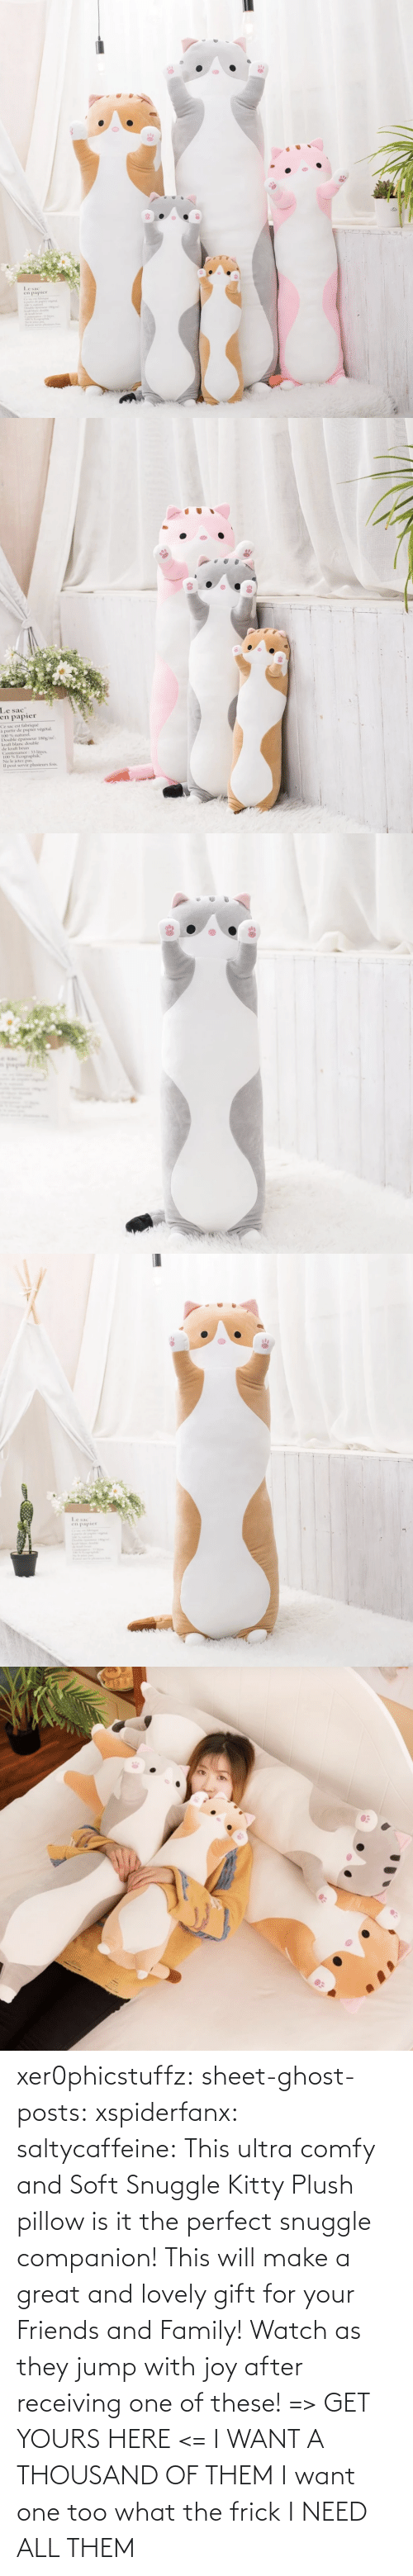 perfect: xer0phicstuffz:  sheet-ghost-posts: xspiderfanx:  saltycaffeine:  This ultra comfy and Soft Snuggle Kitty Plush pillow is it the perfect snuggle companion! This will make a great and lovely gift for your Friends and Family! Watch as they jump with joy after receiving one of these! => GET YOURS HERE <=    I WANT A THOUSAND OF THEM  I want one too what the frick    I NEED ALL THEM